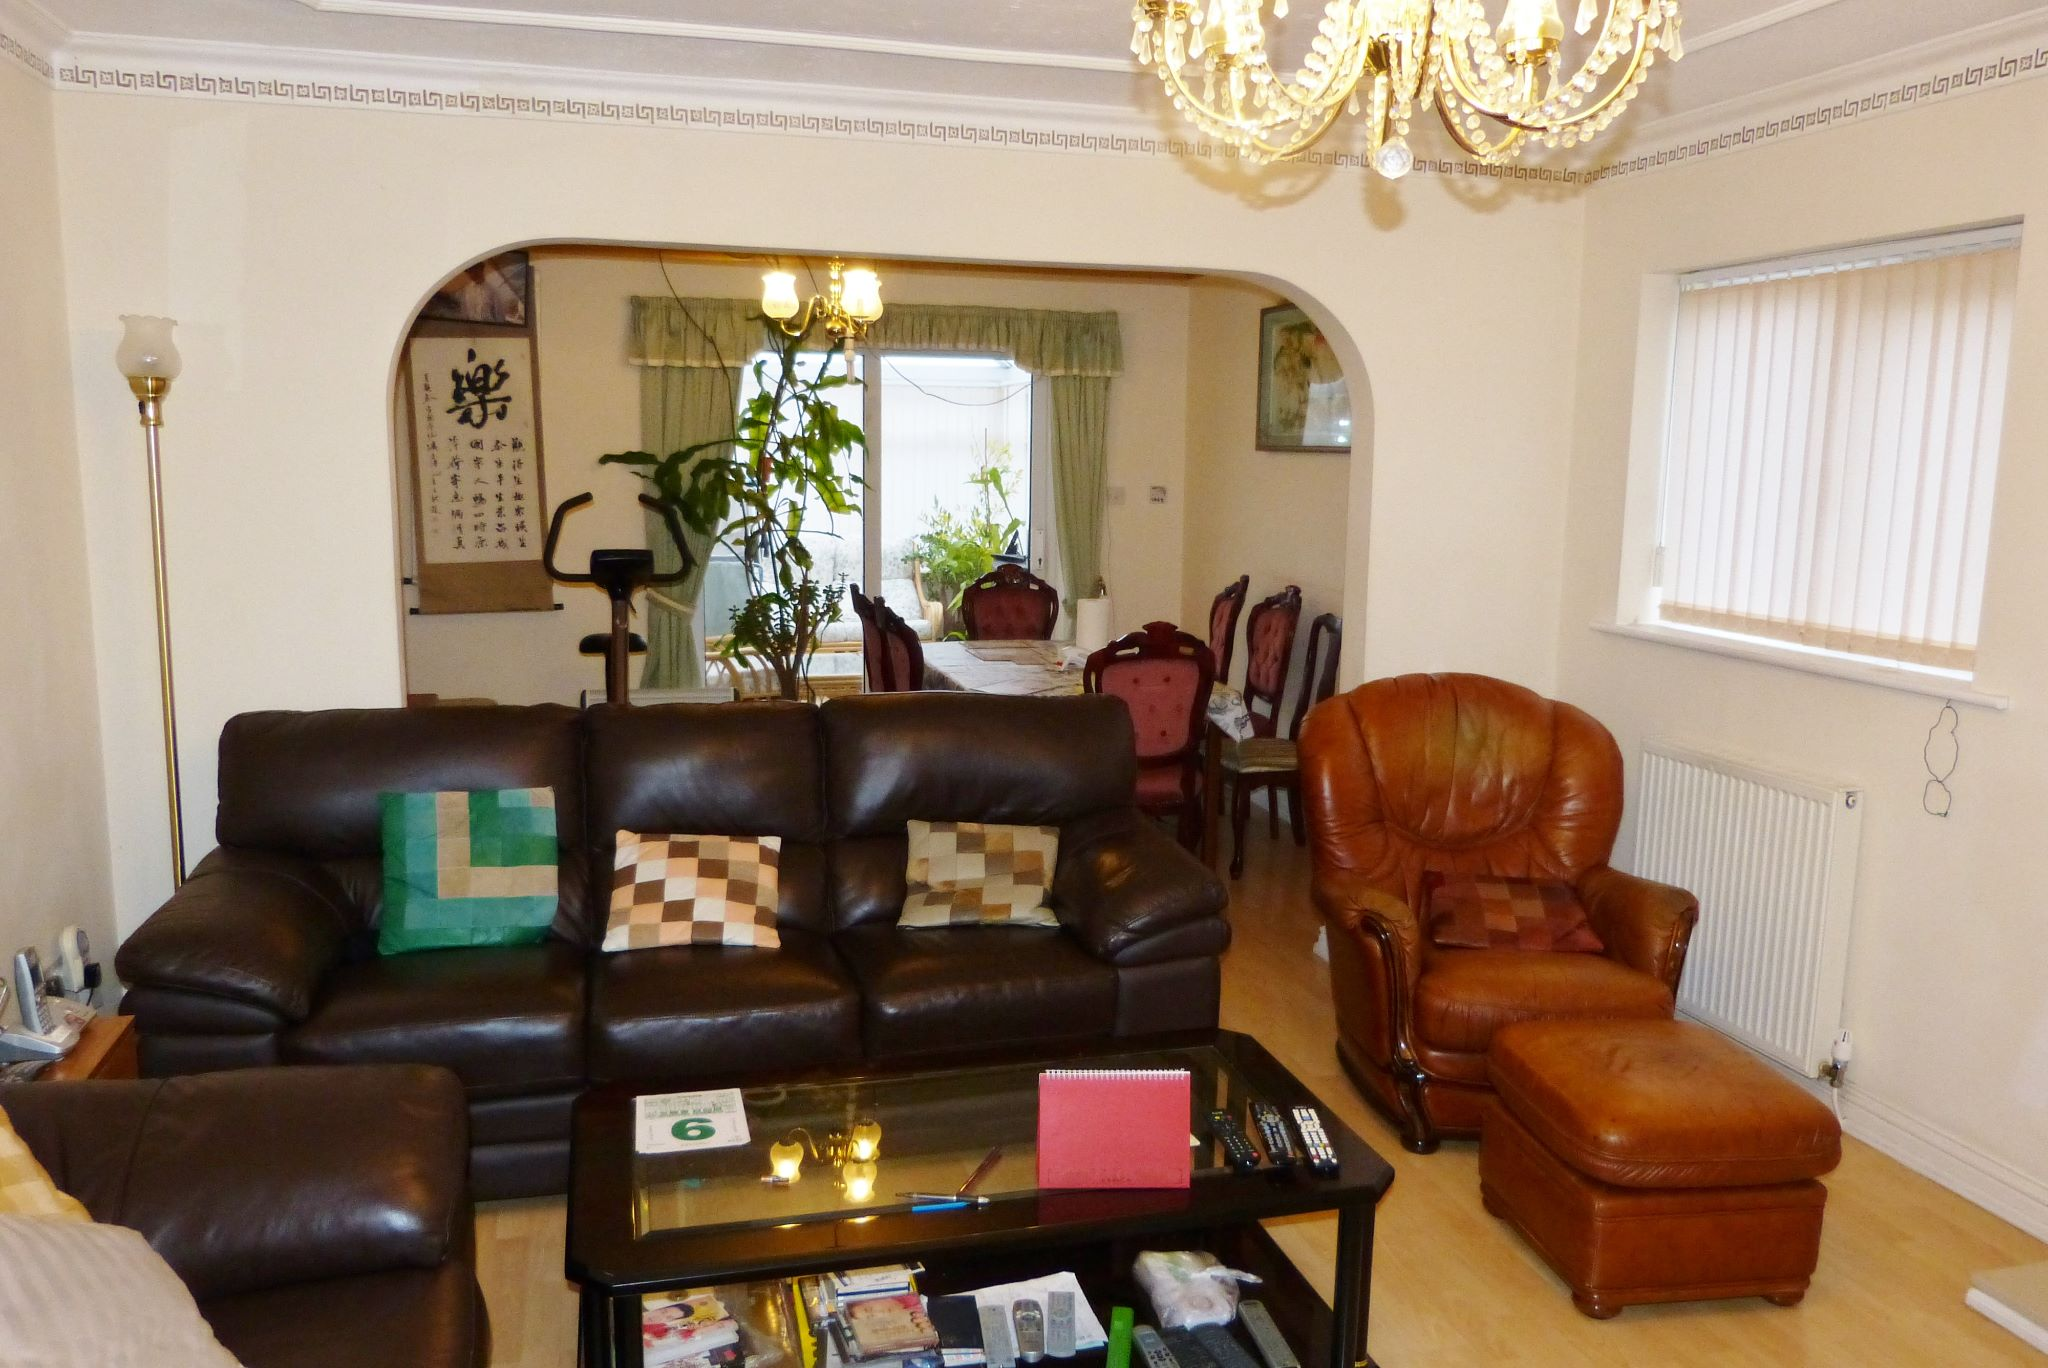 4 bedroom detached house For Sale in Abergele - Photograph 6